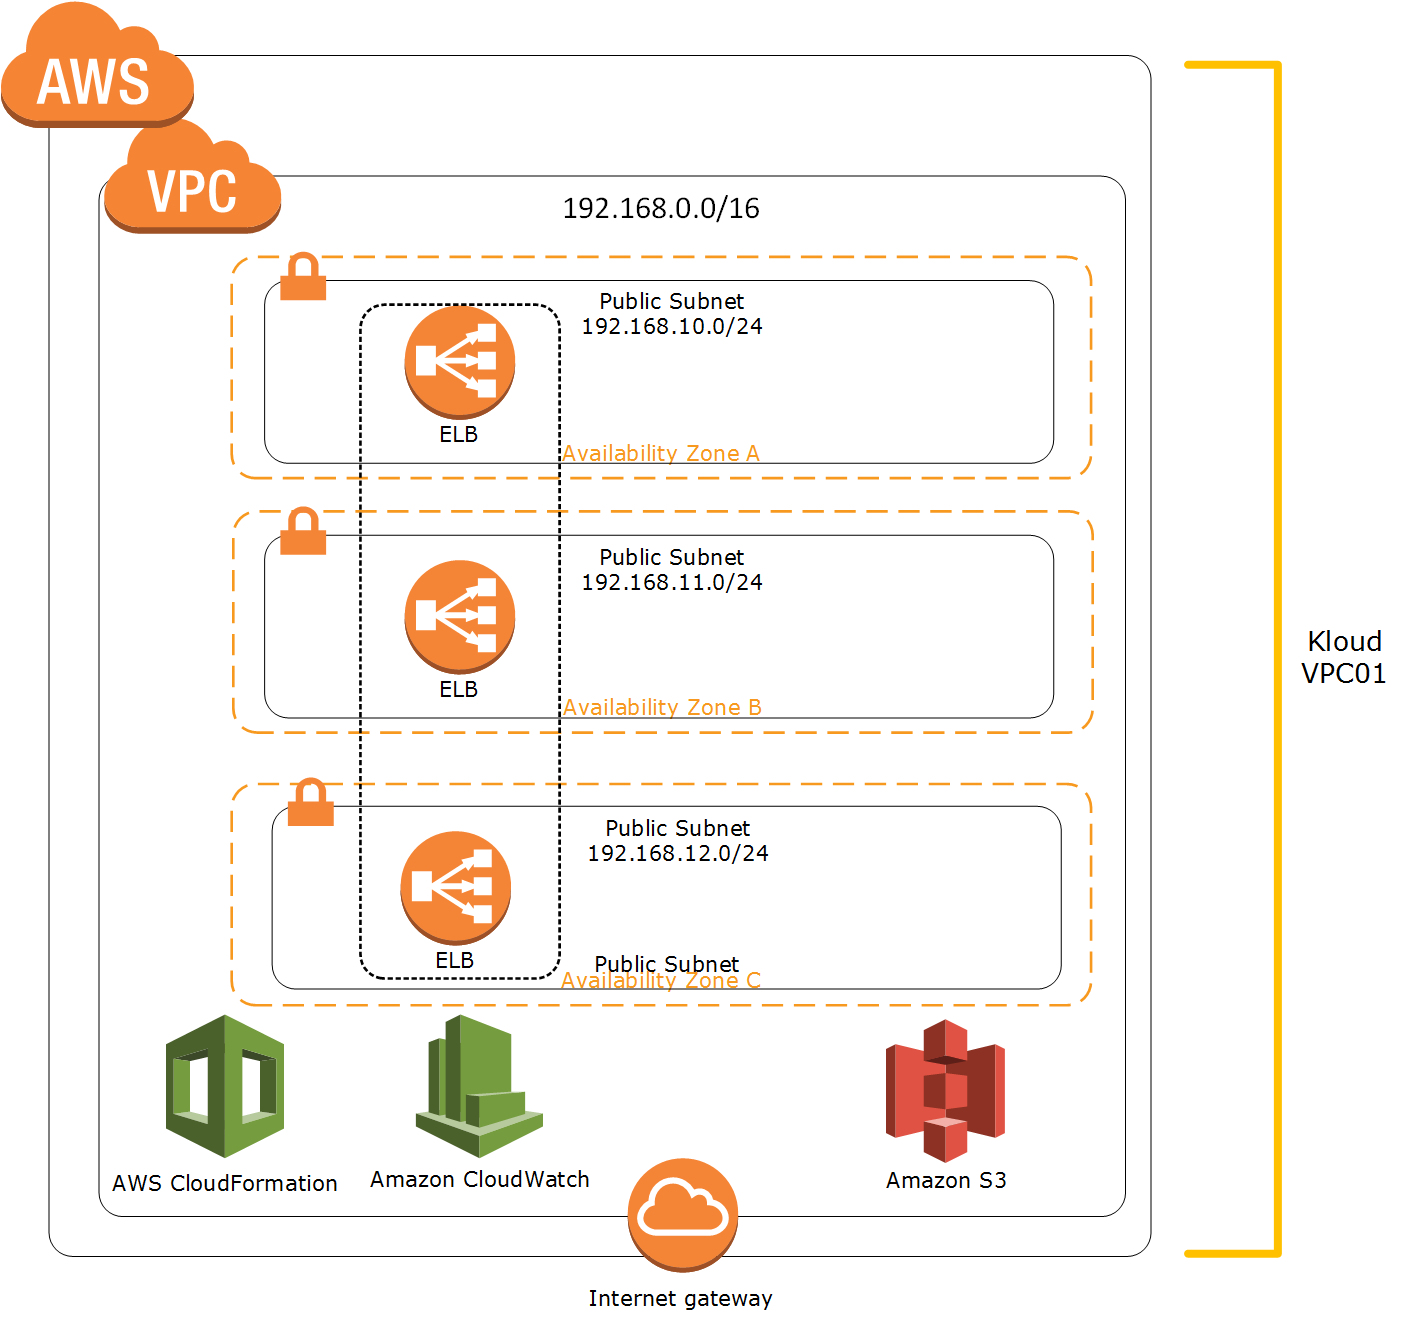 Automate your cloud operations part 1 aws cloudformation kloud blog cloudformation1 maxwellsz